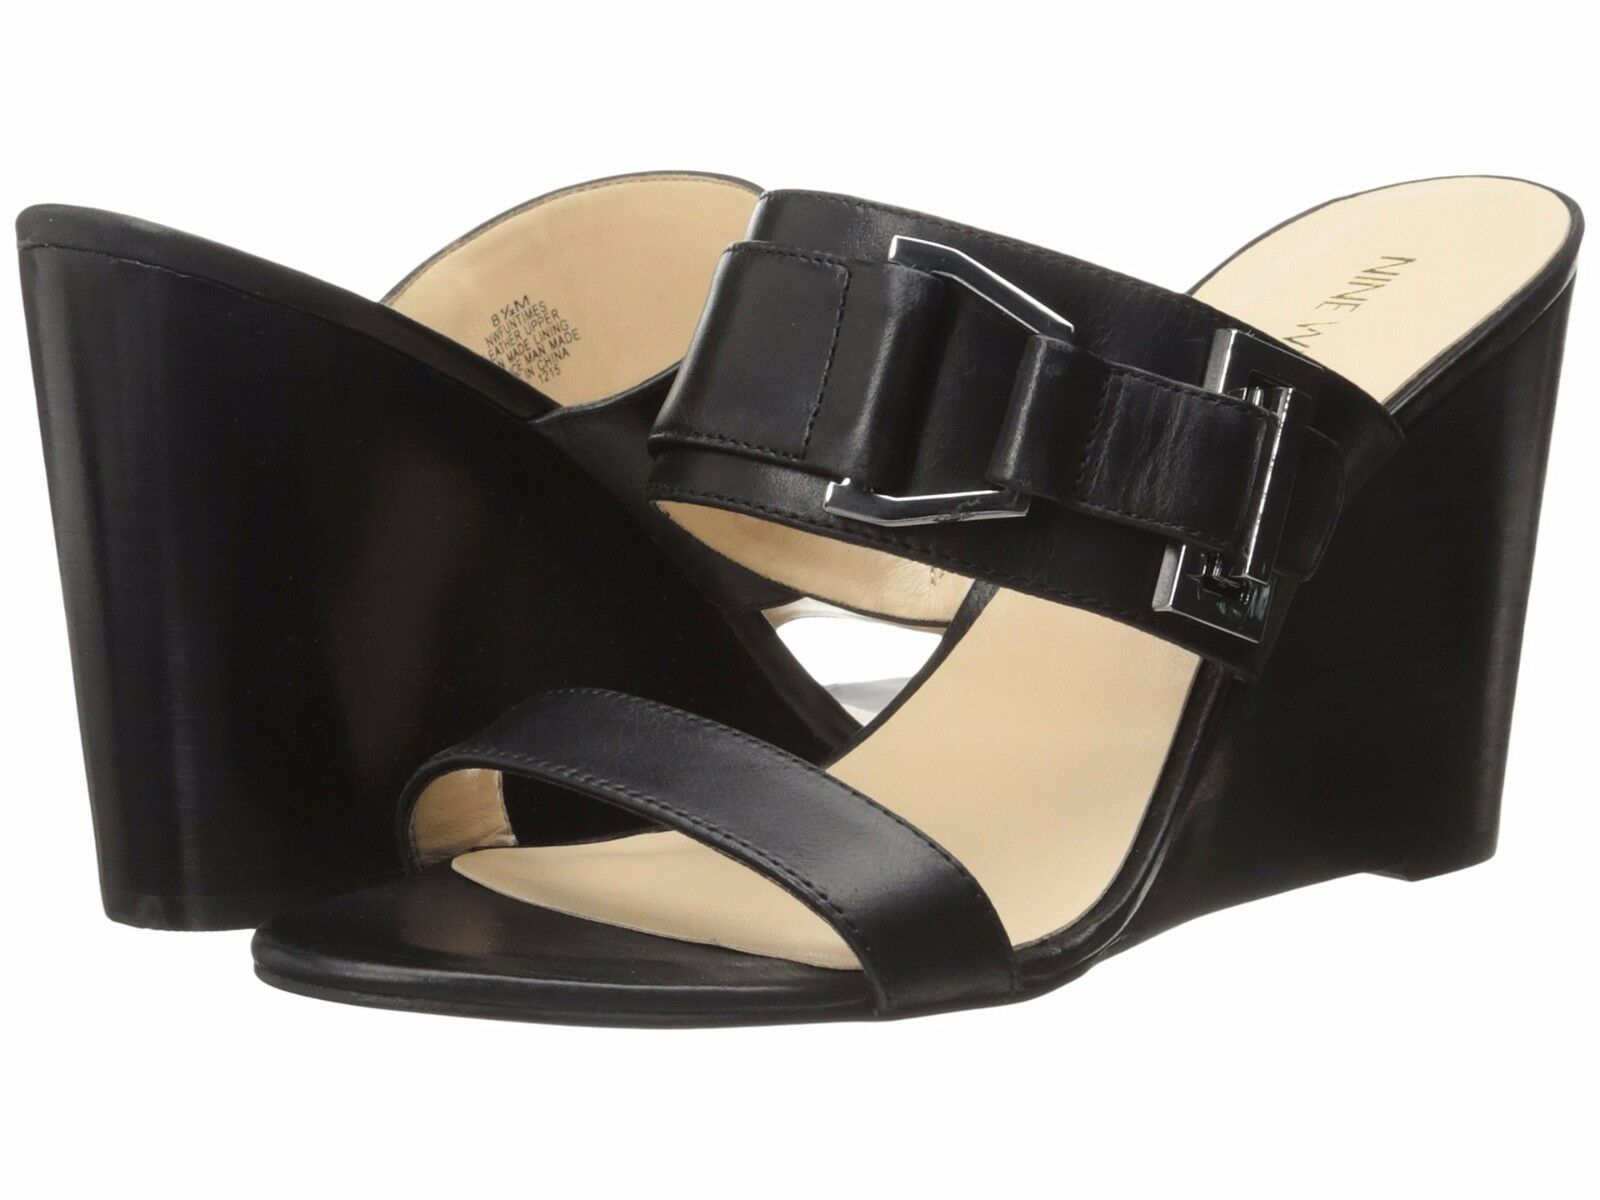 Nine West Funtimes 7.5 Black Leather Stacked Wedge Open Toe Slip-On Sandal